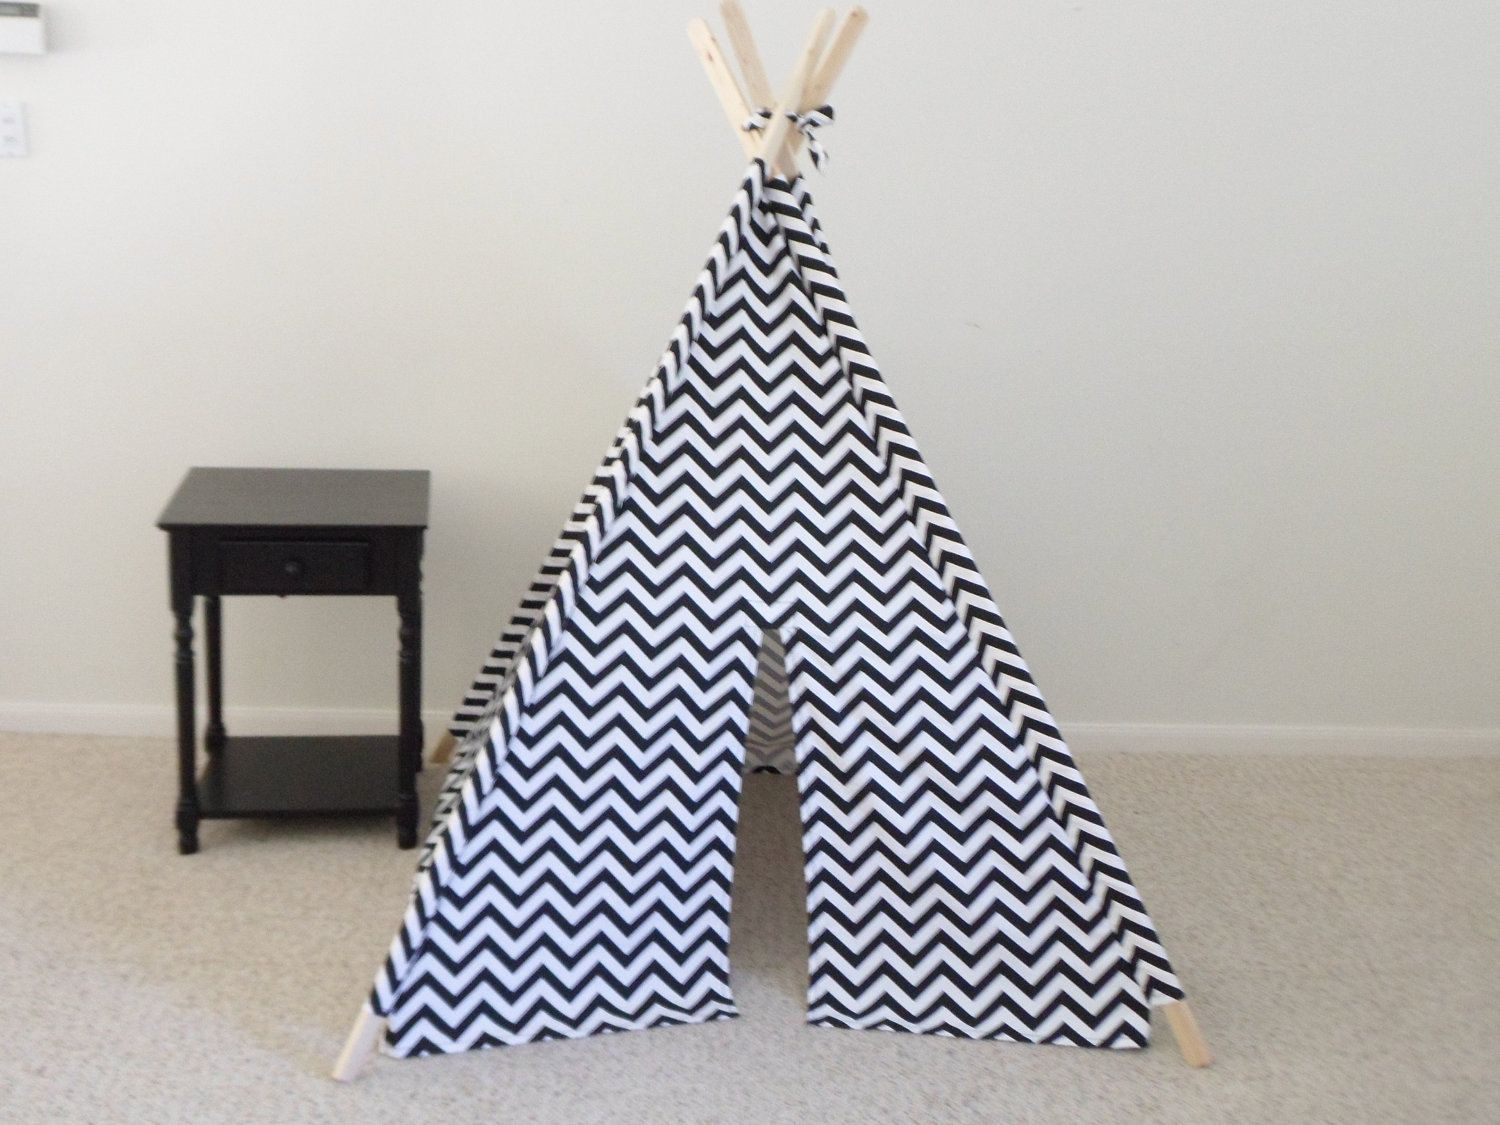 new product 1ea4f b095d Black and White Chevron Teepee or Pick your fabric color ...